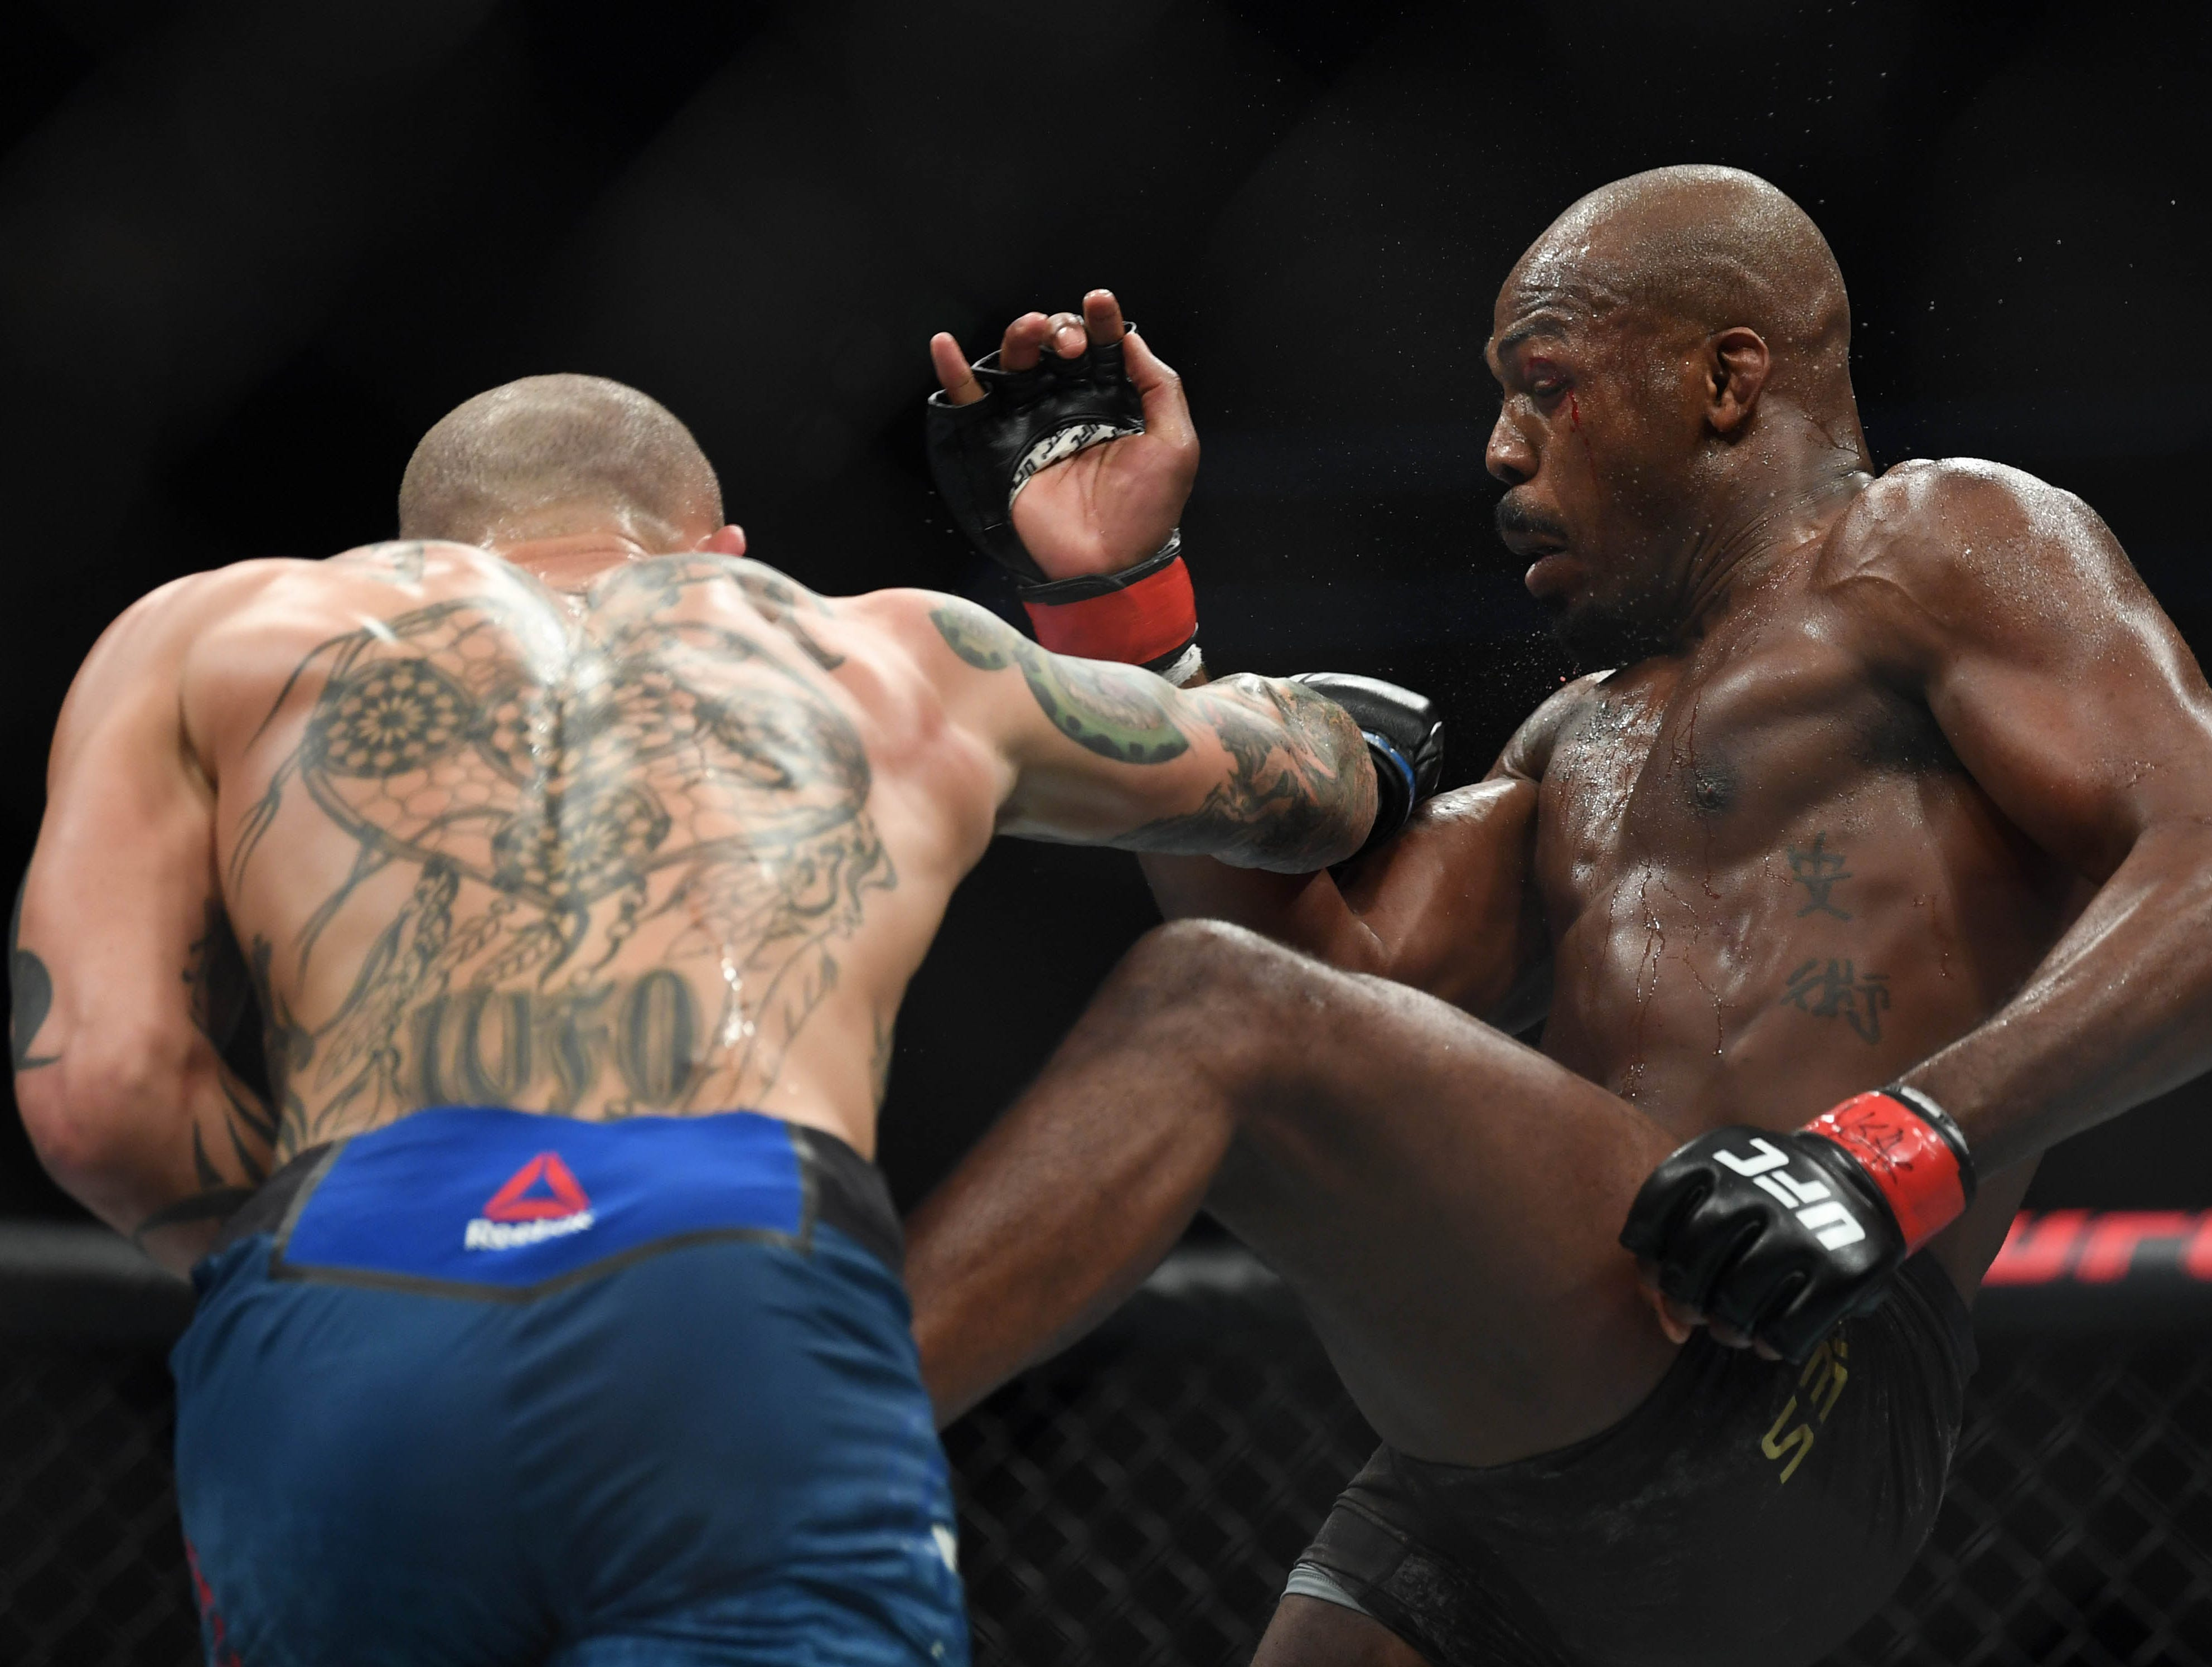 Mar 2, 2019; Las Vegas, NV, USA; Jon Jones (red gloves) and Anthony Smith (blue gloves) during UFC 235 at T-Mobile Arena. Mandatory Credit: Stephen R. Sylvanie-USA TODAY Sports